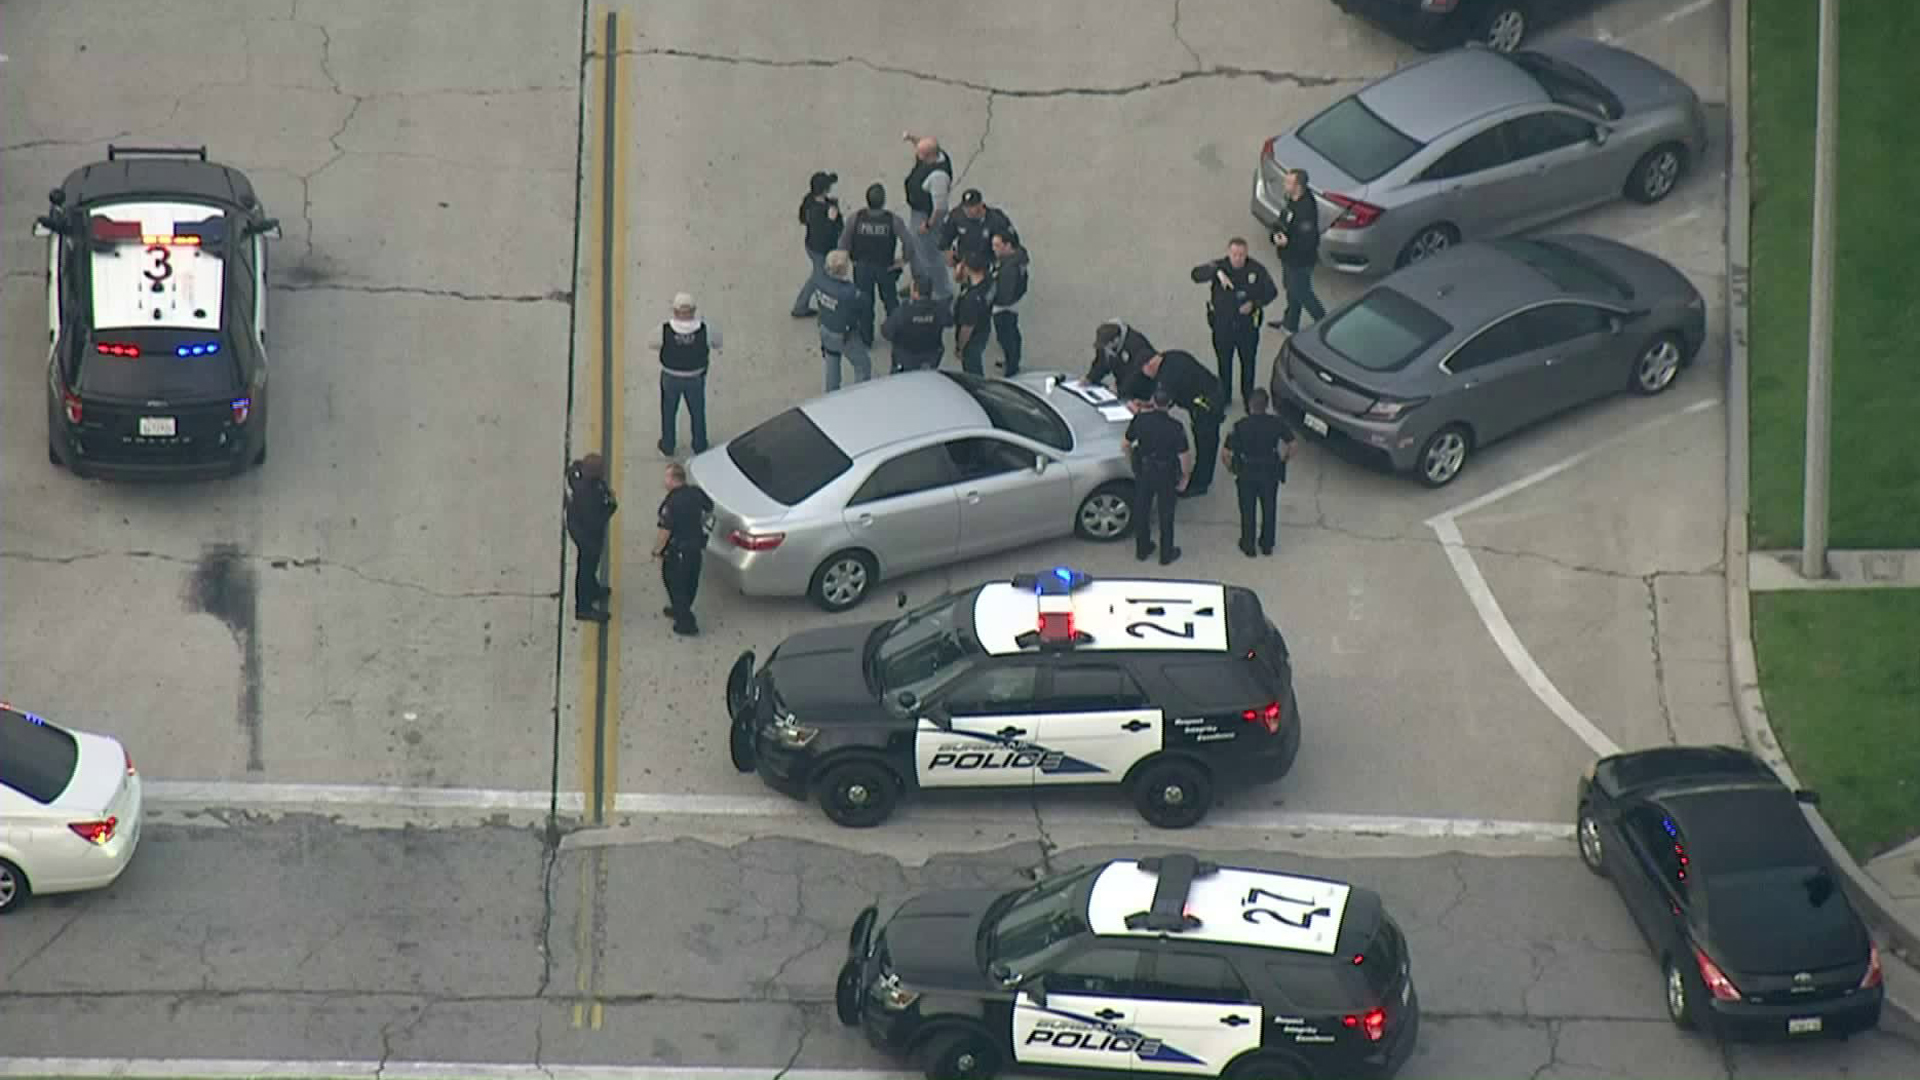 Police search for a wanted man in Burbank on Jan. 30, 2019. (Credit: KTLA)